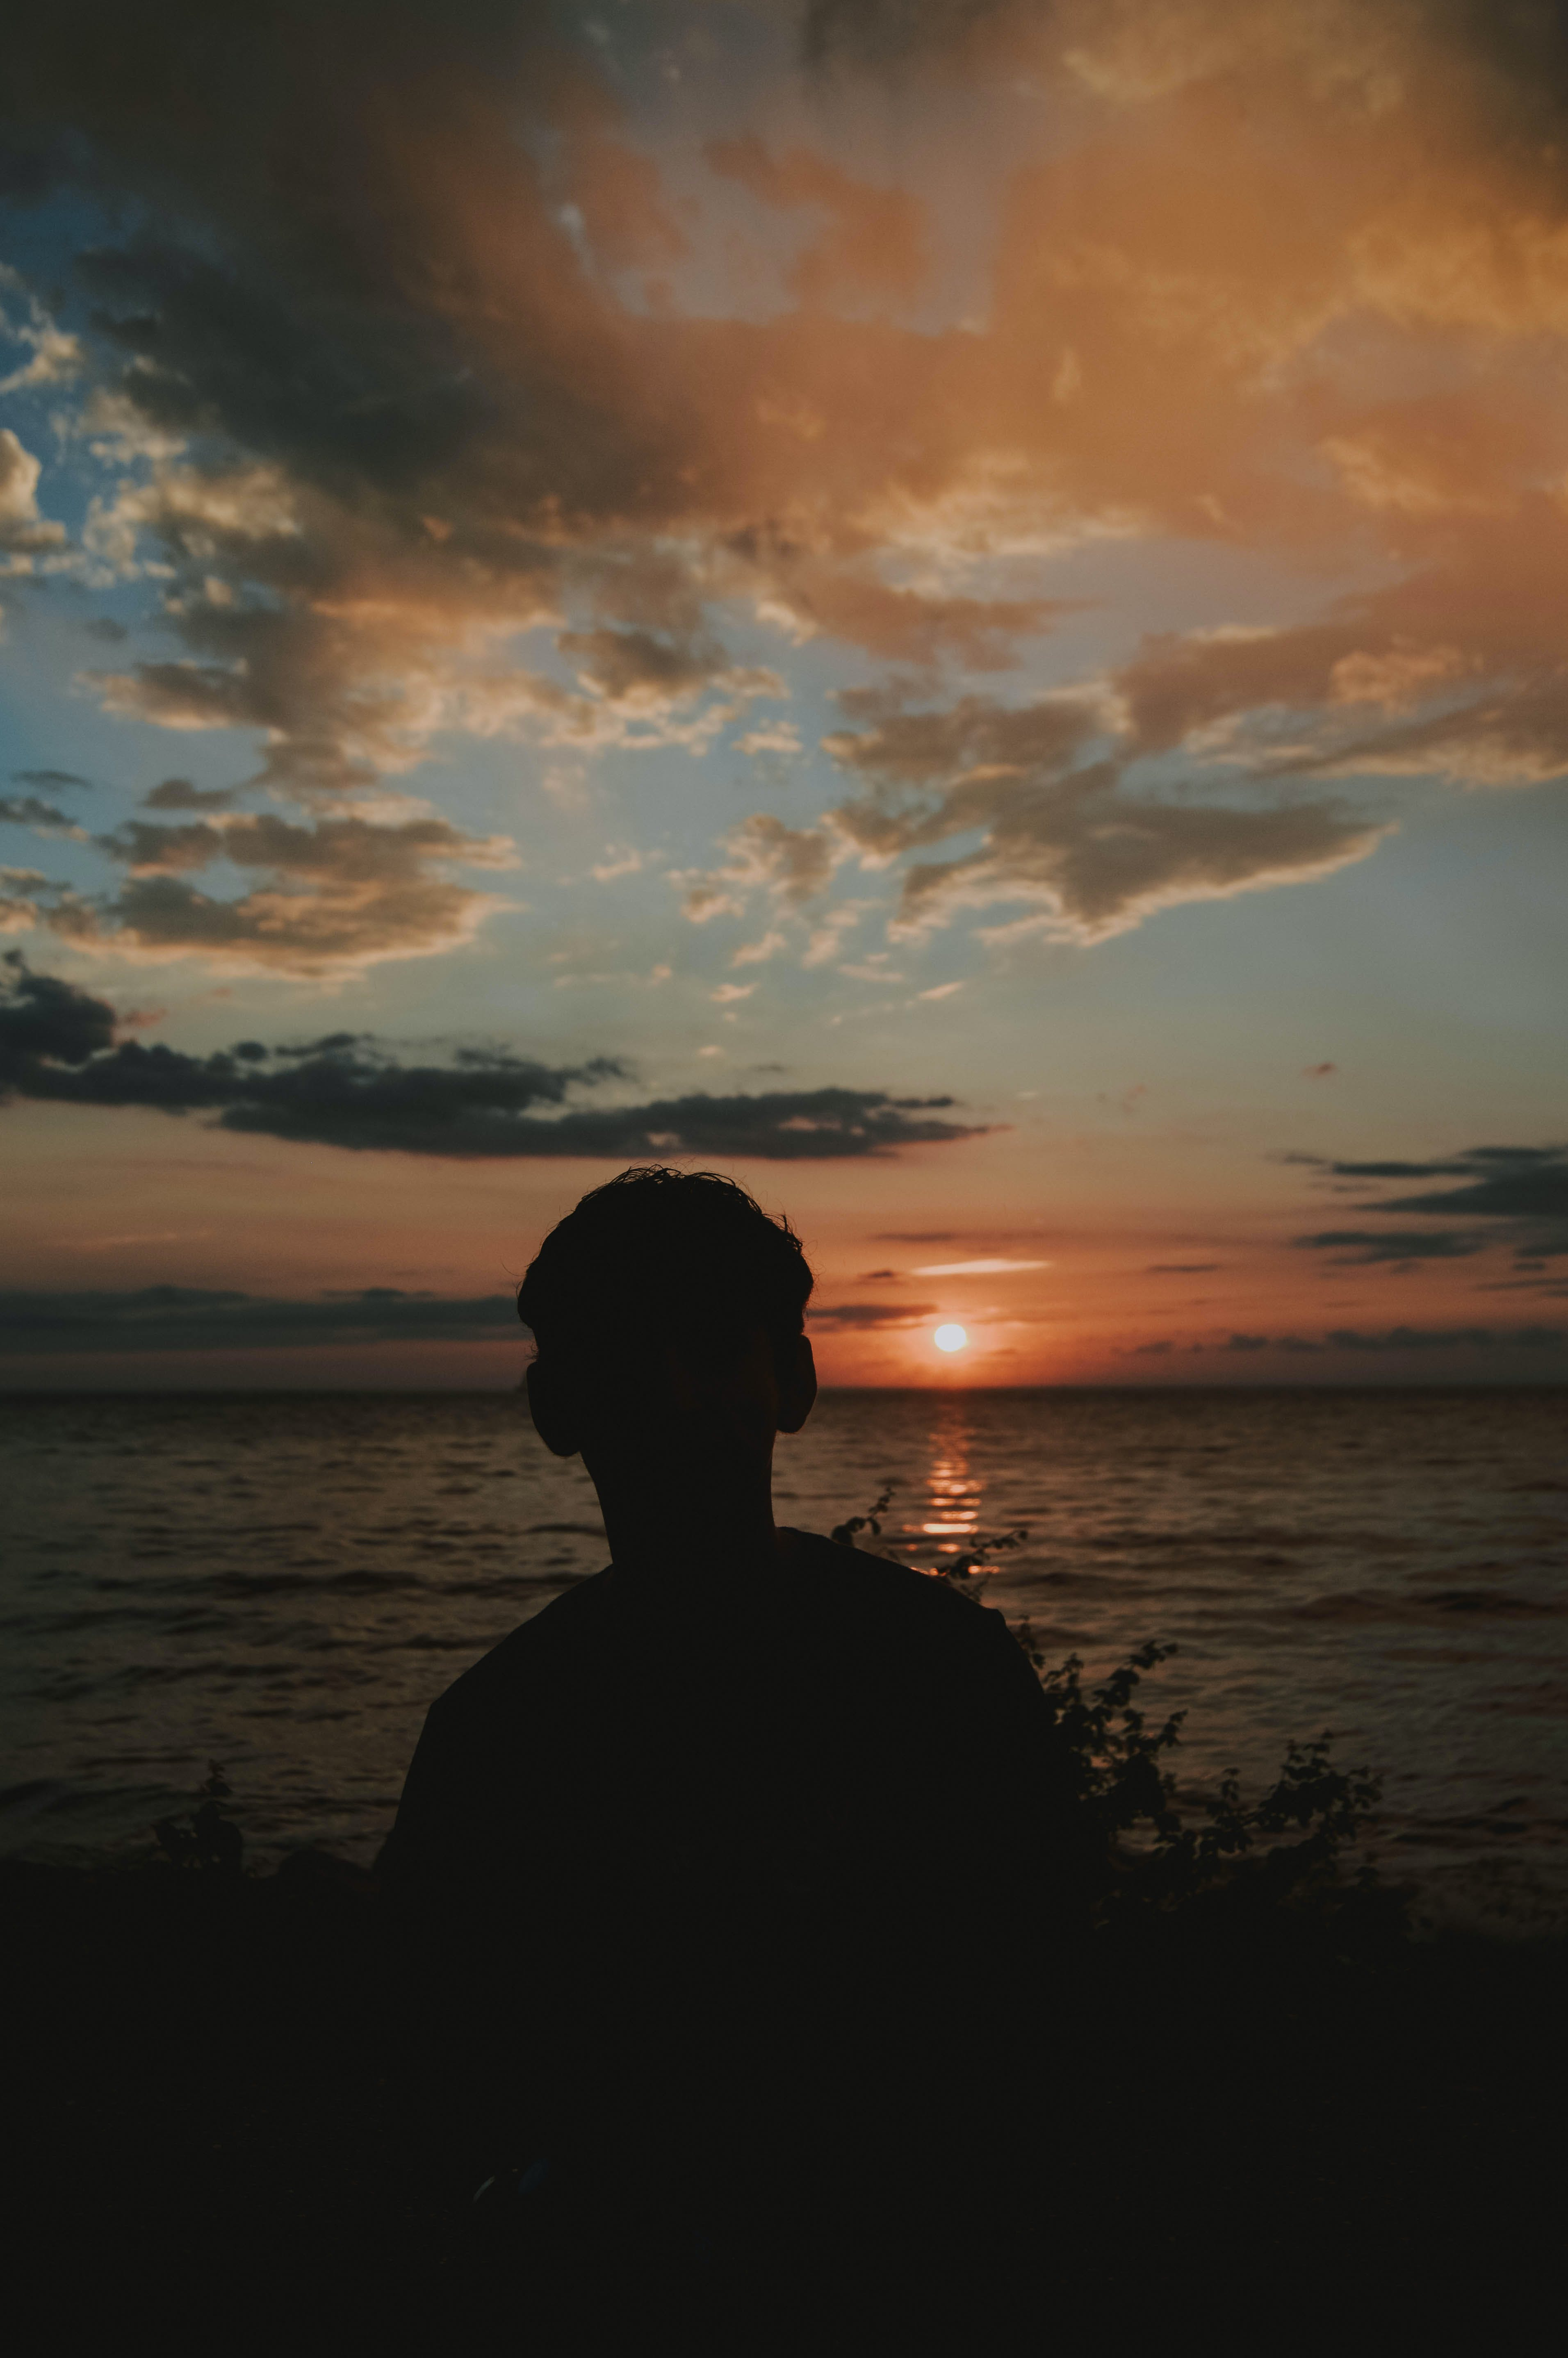 Silhouette Photography of Man Near Body of Water